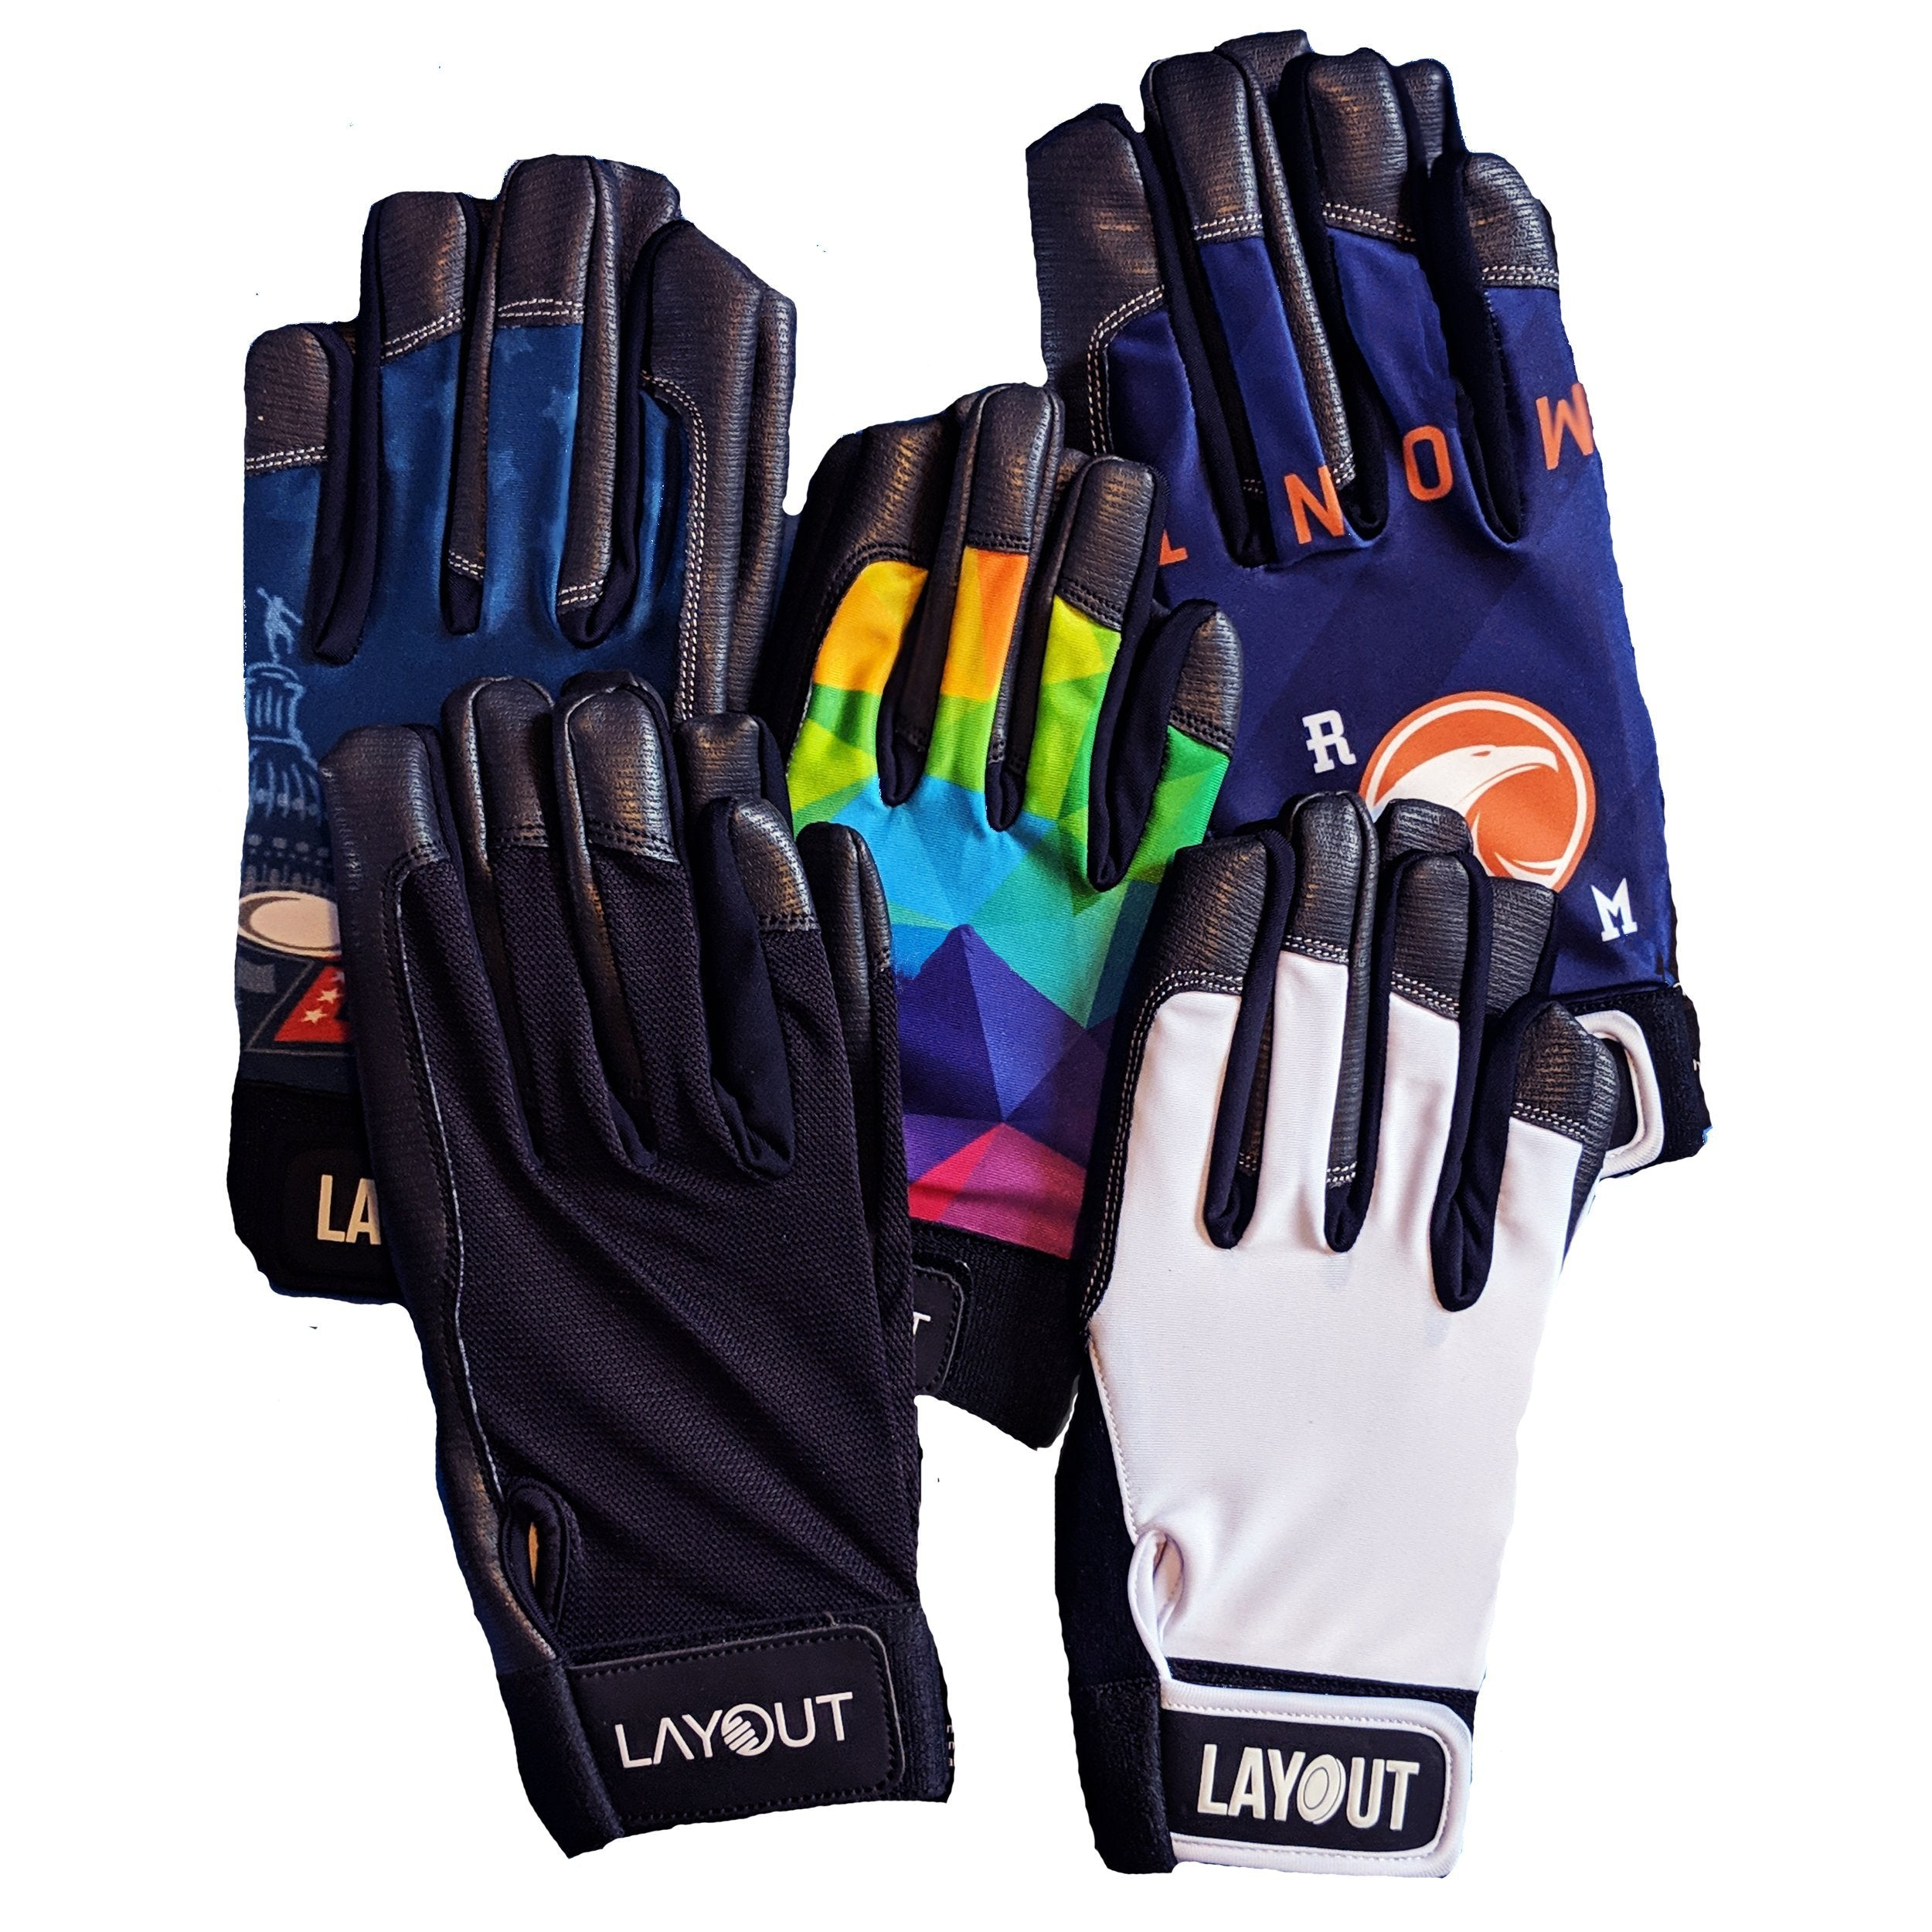 BLOWOUT L, XL, XXL Mystery Gloves! 2 Pairs - Layout Ultimate